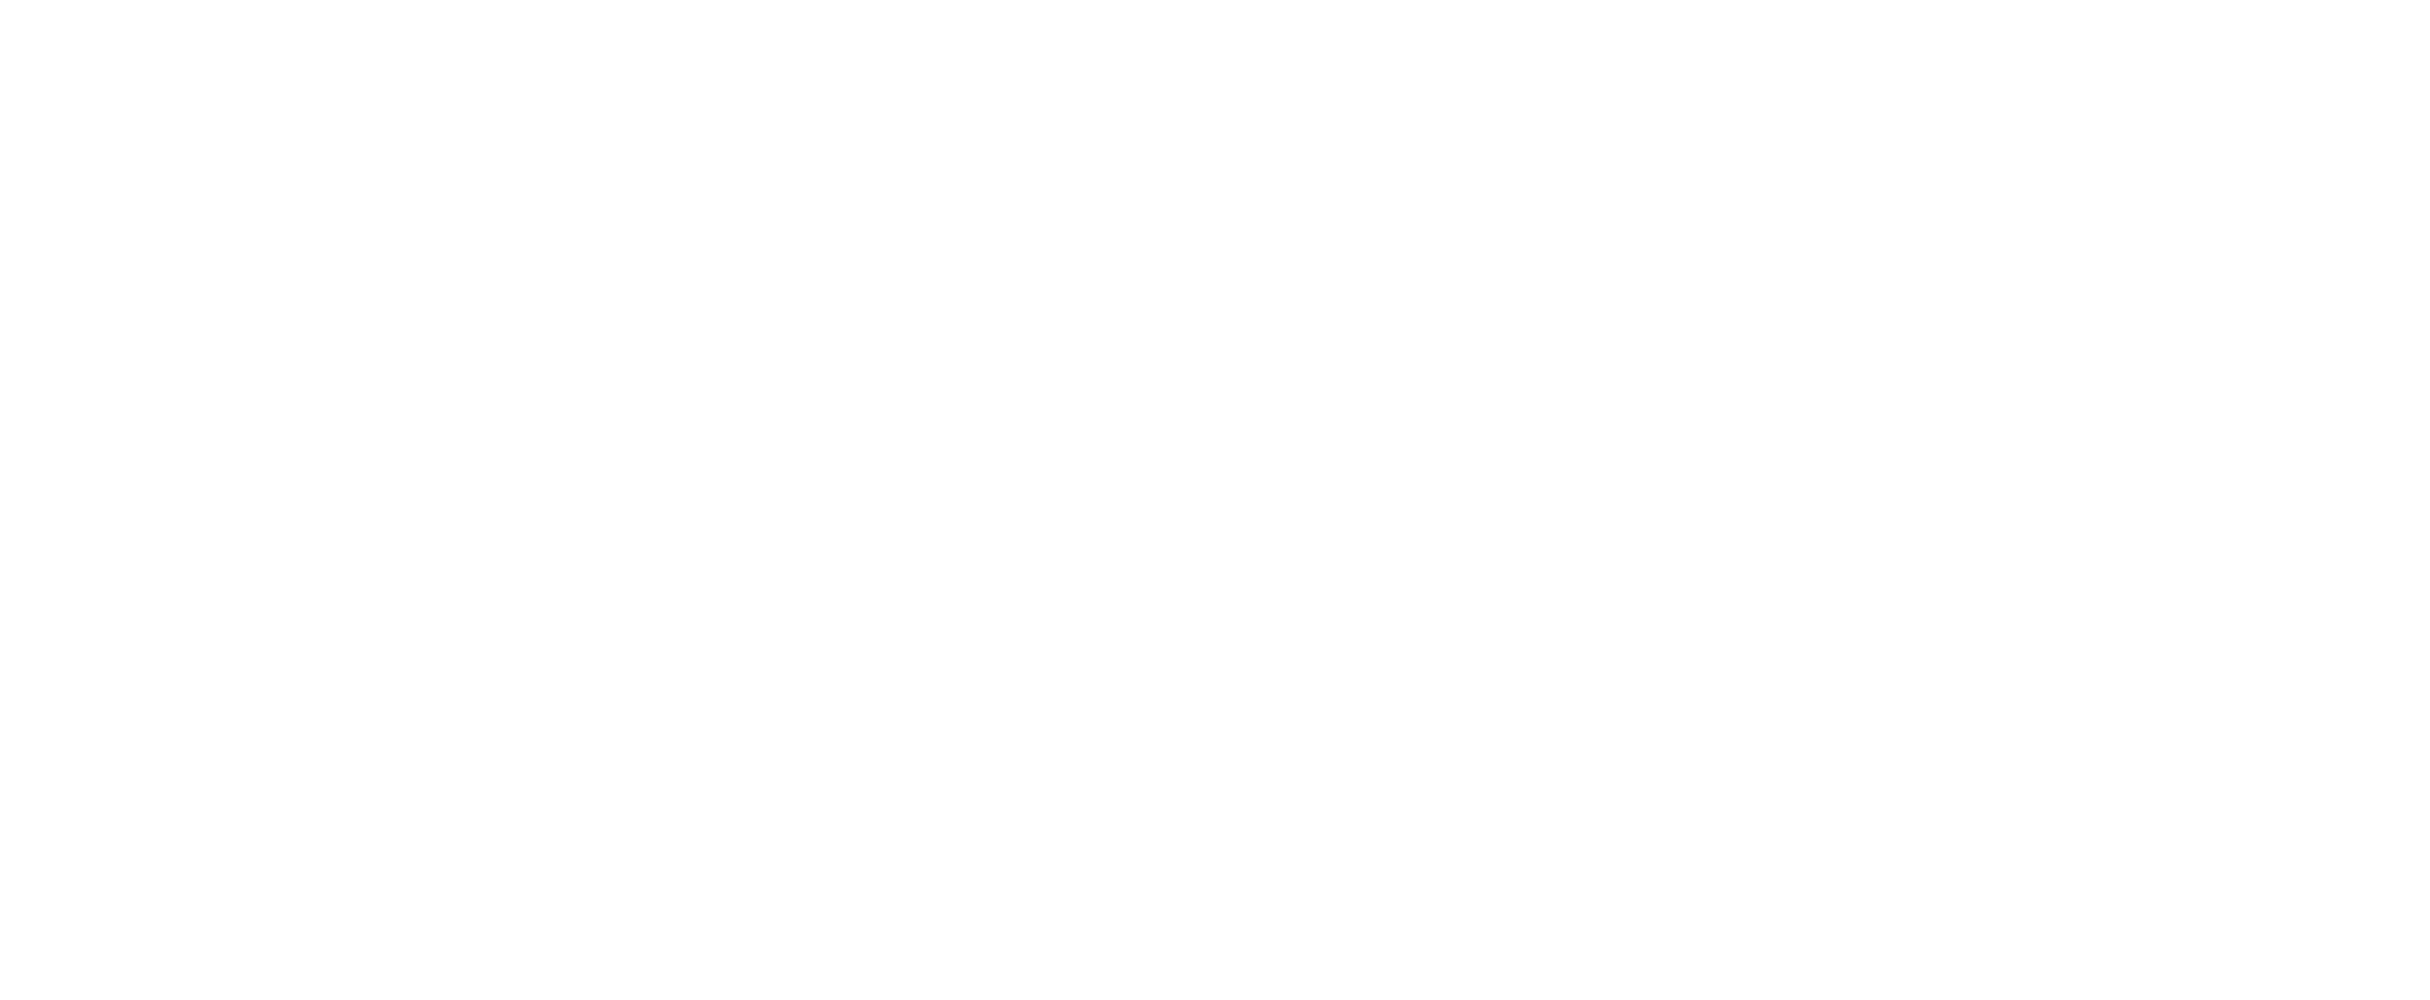 Acorn Health & Recovery